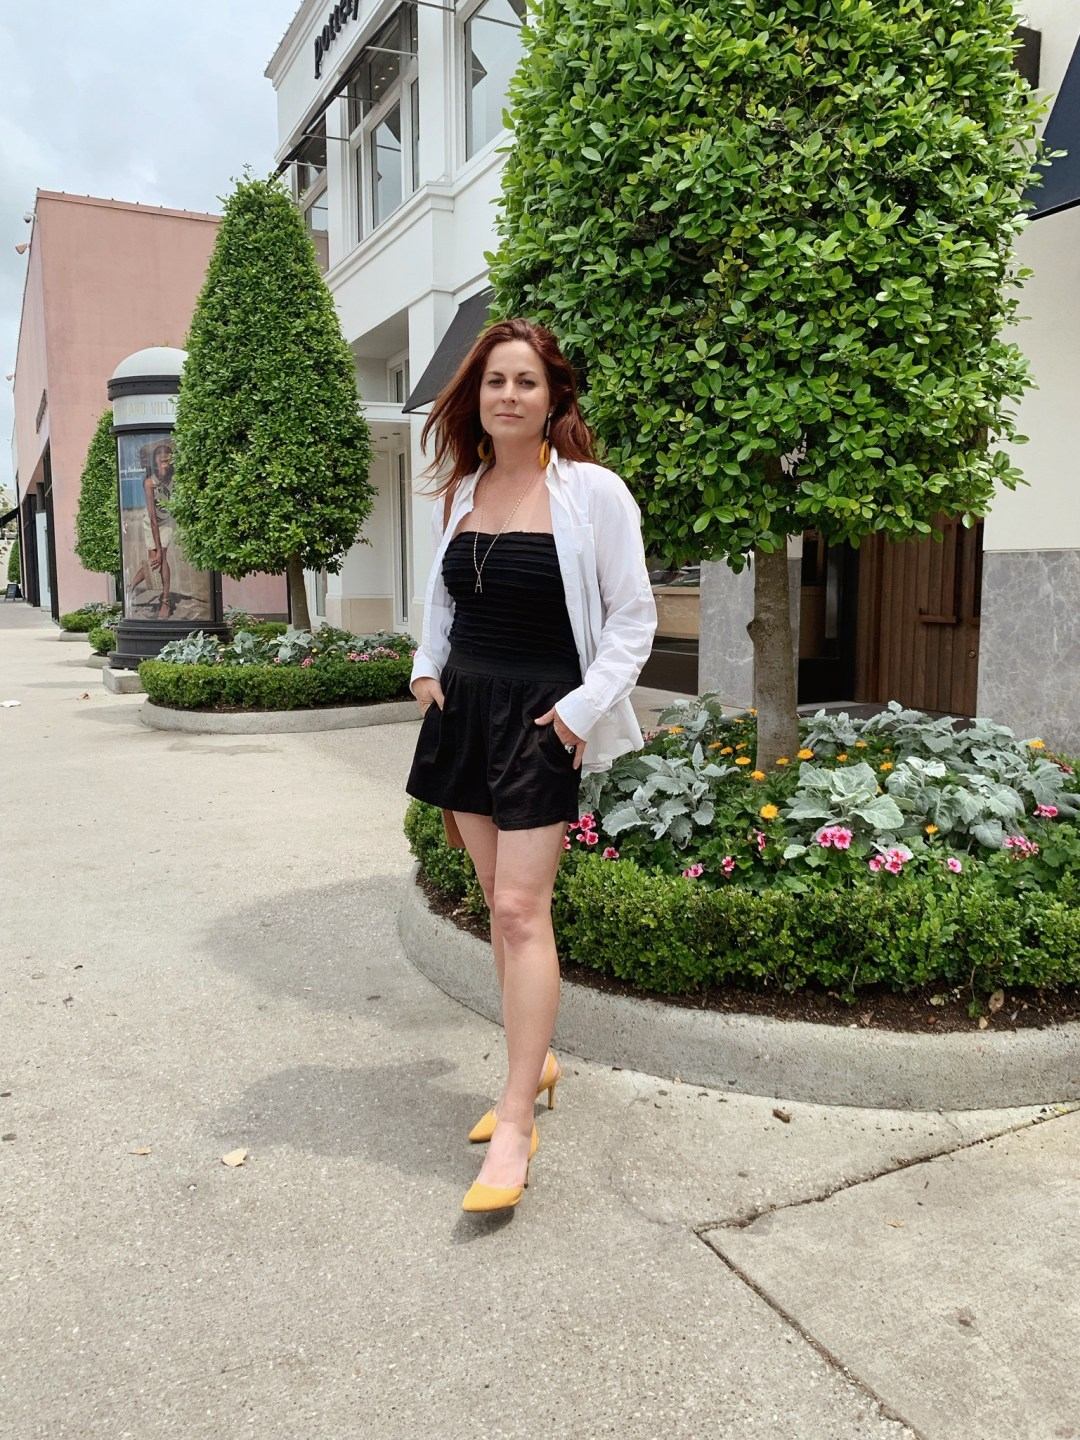 how to style a romper, minimalist style, yellow shoes outfits, white button up shirt outfits